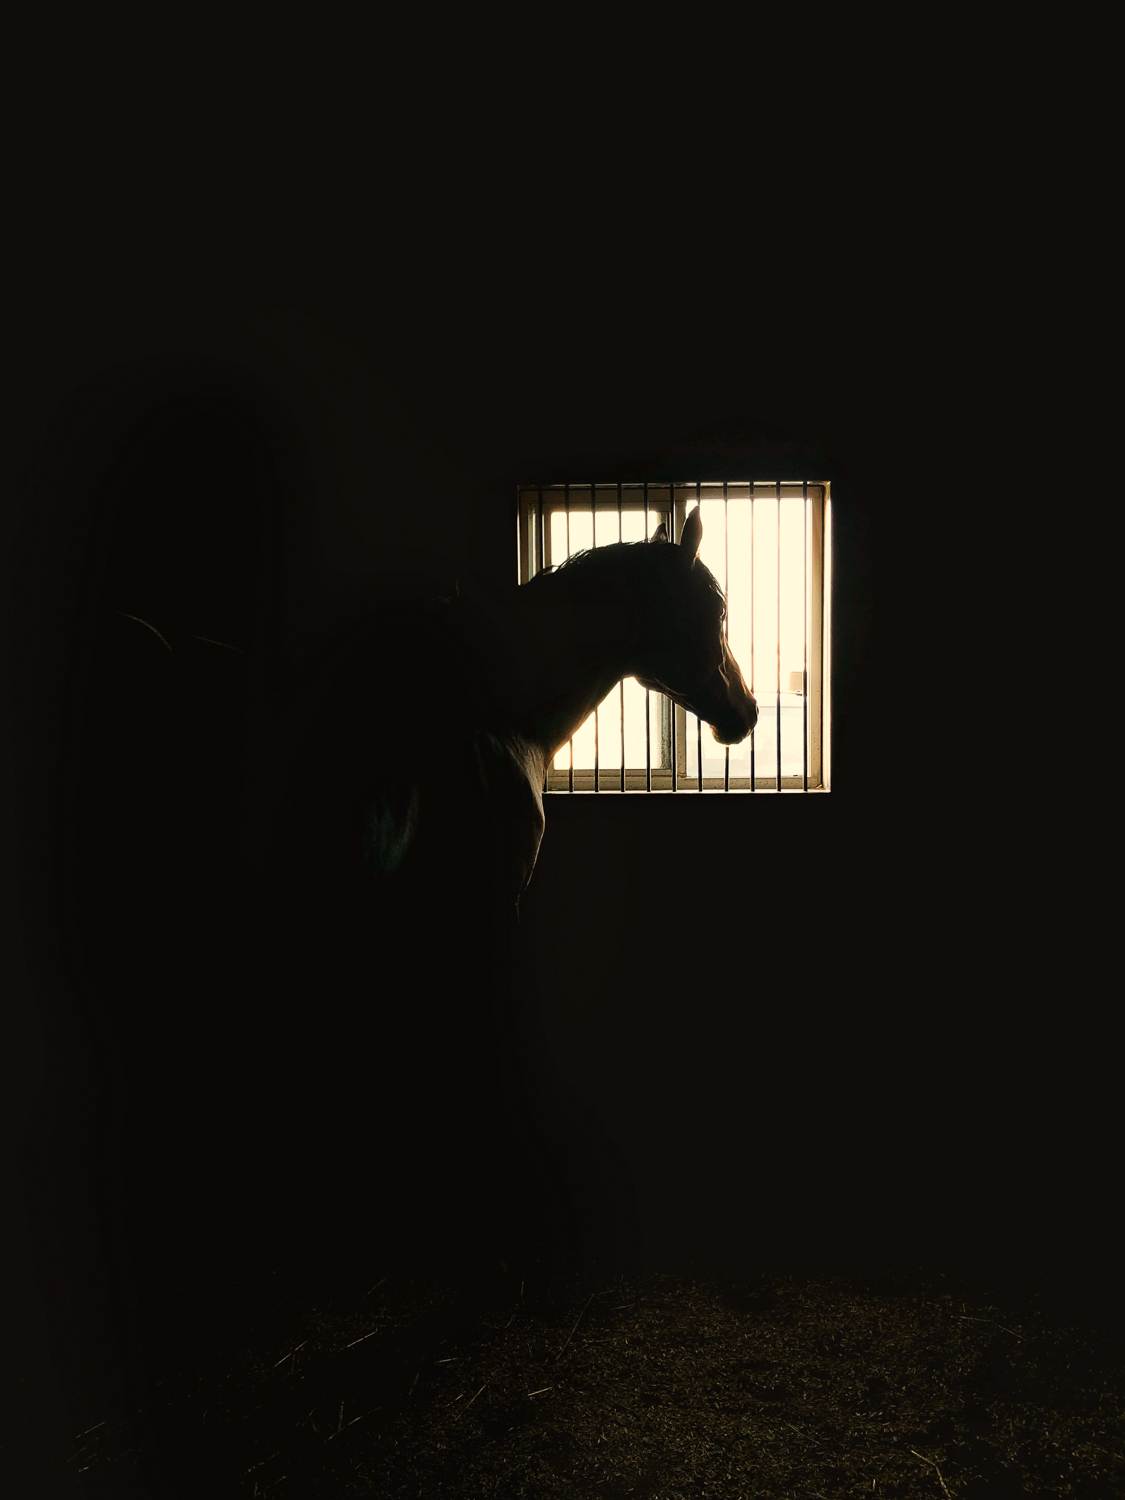 Karthika Gupta CulturallyOurs Minimalism in photography Horses in shadow